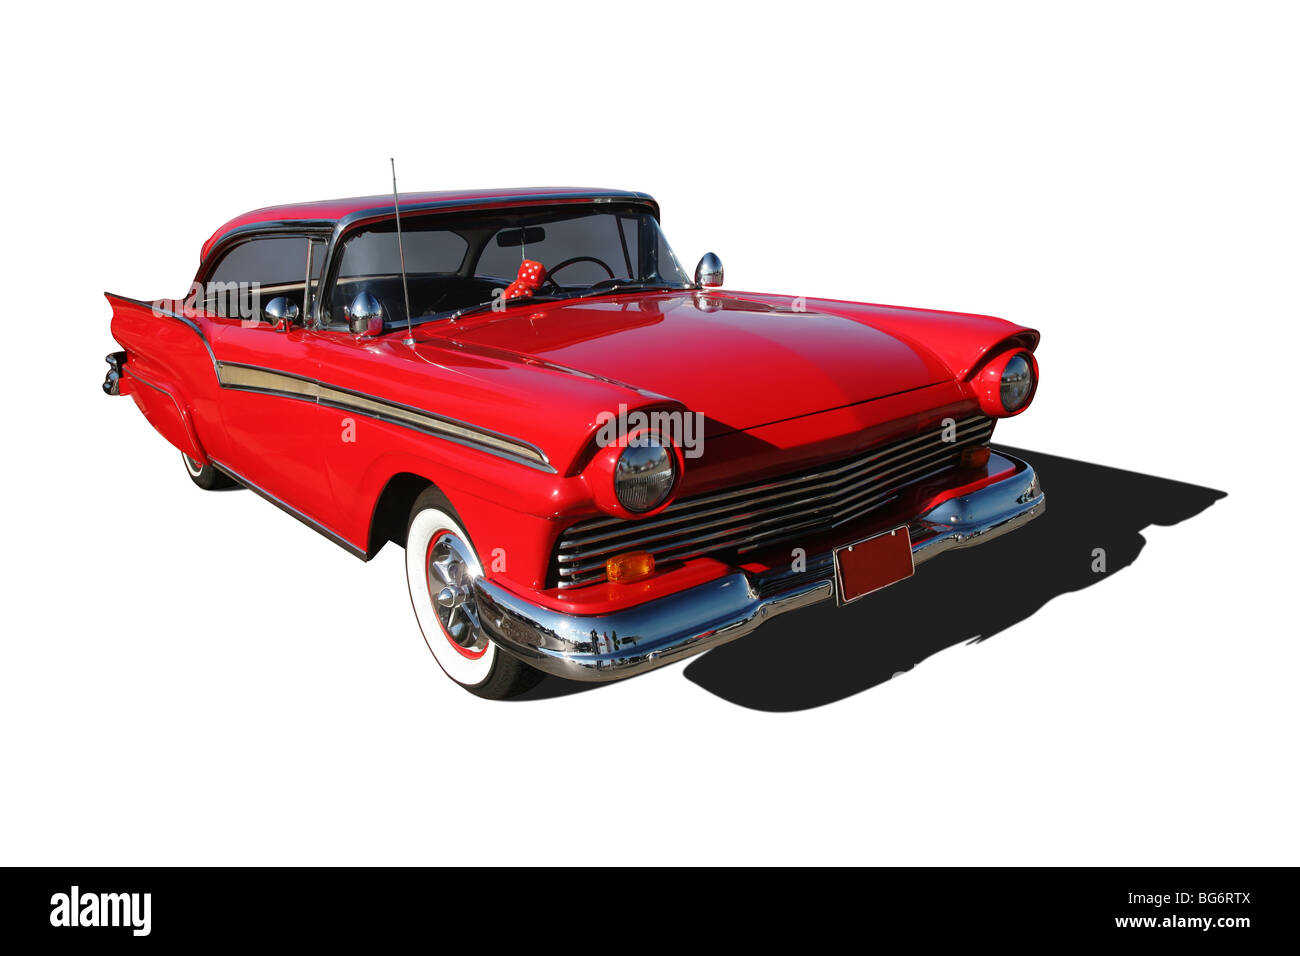 Auto- 1957 Ford Fairlane. - Stock Image